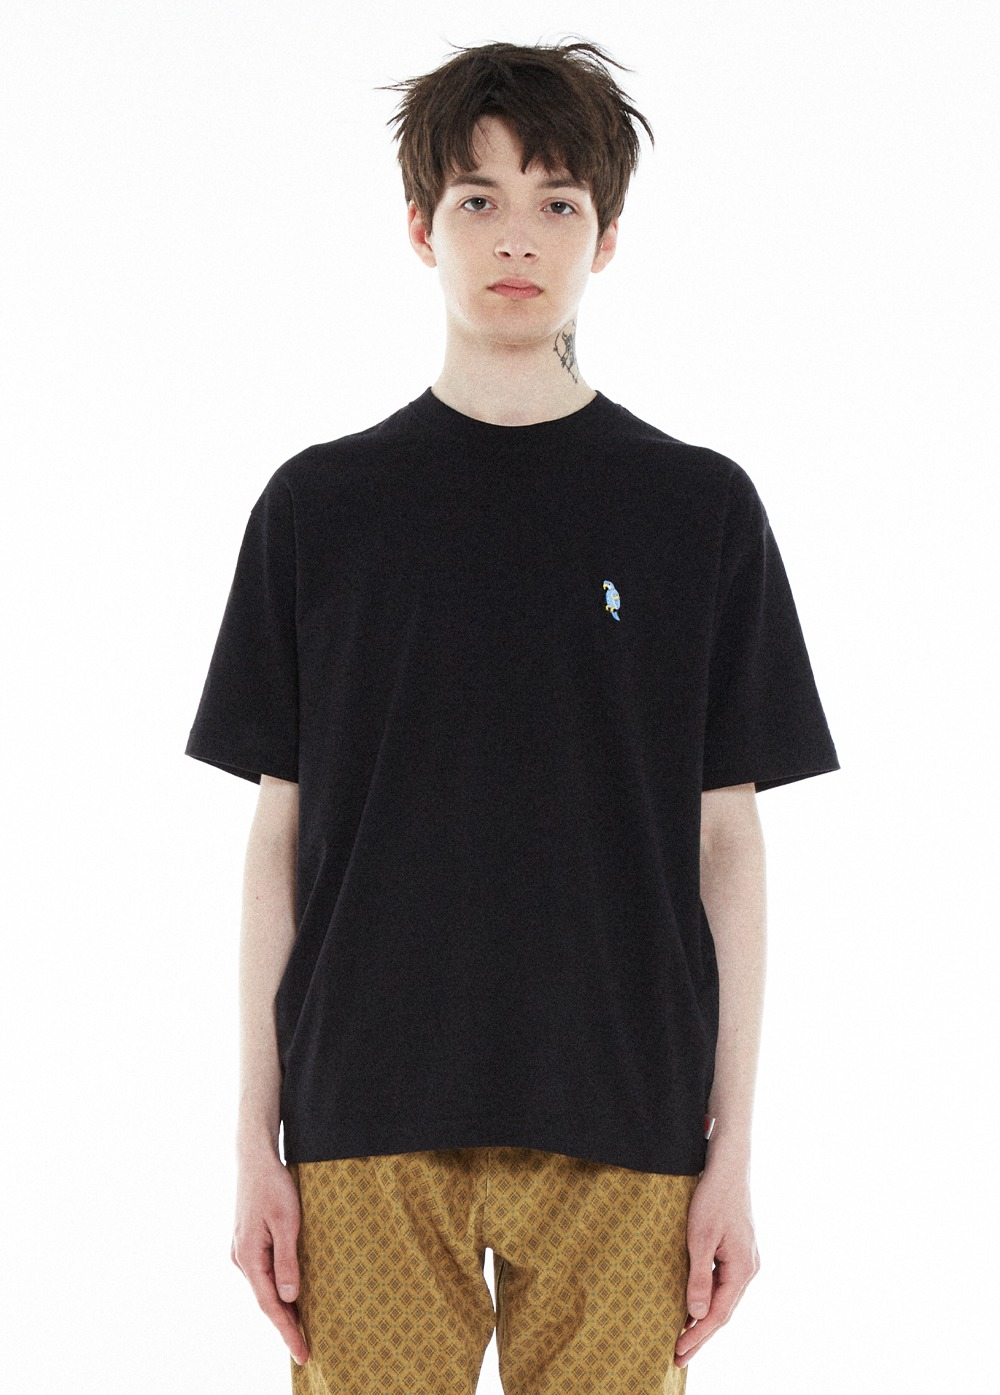 KANCO FULL LOGO TEE black